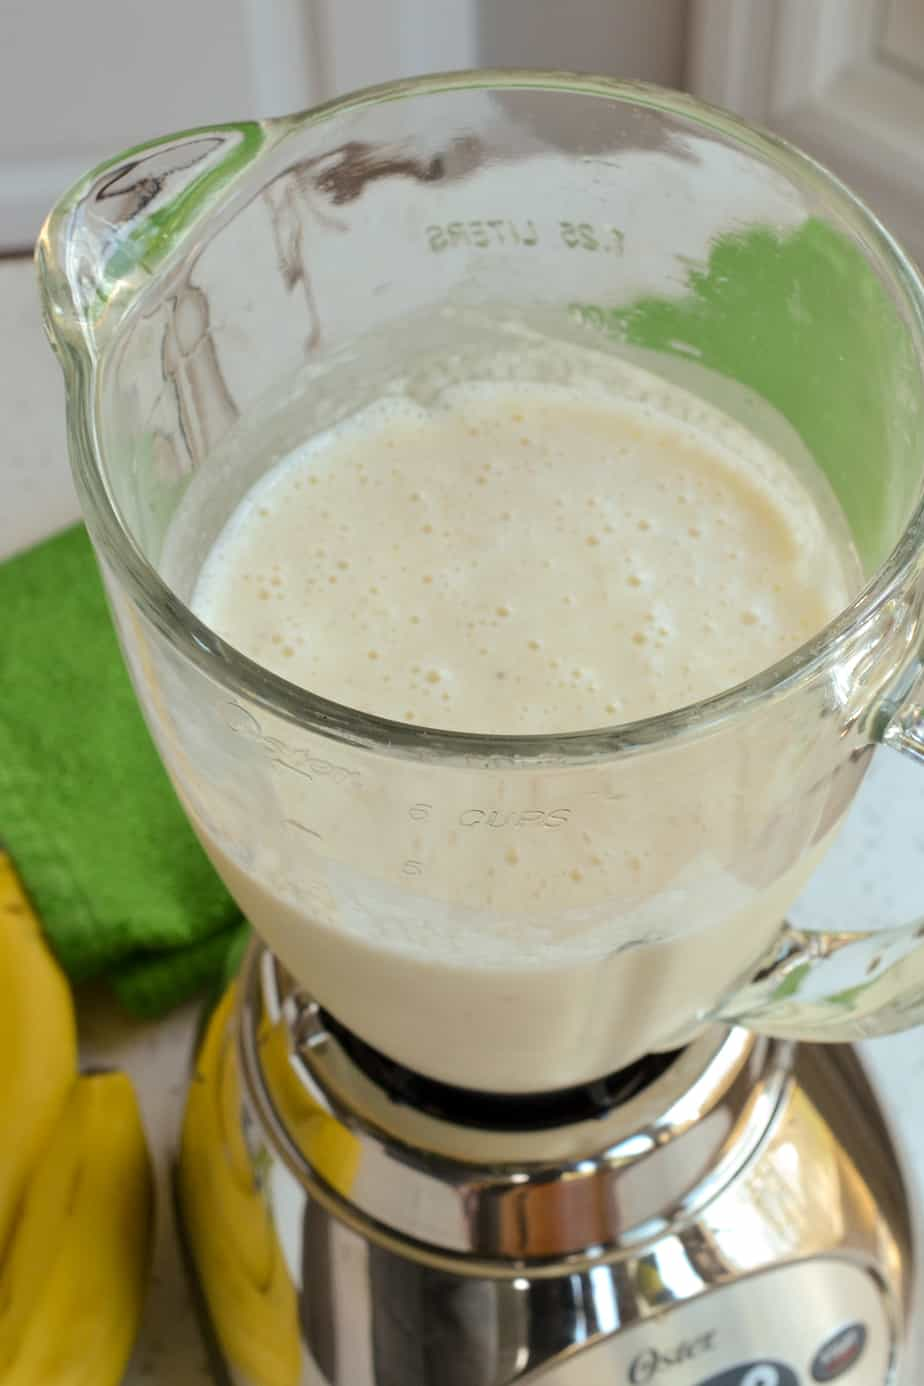 The frozen banana cocktails are made easy in a blender.